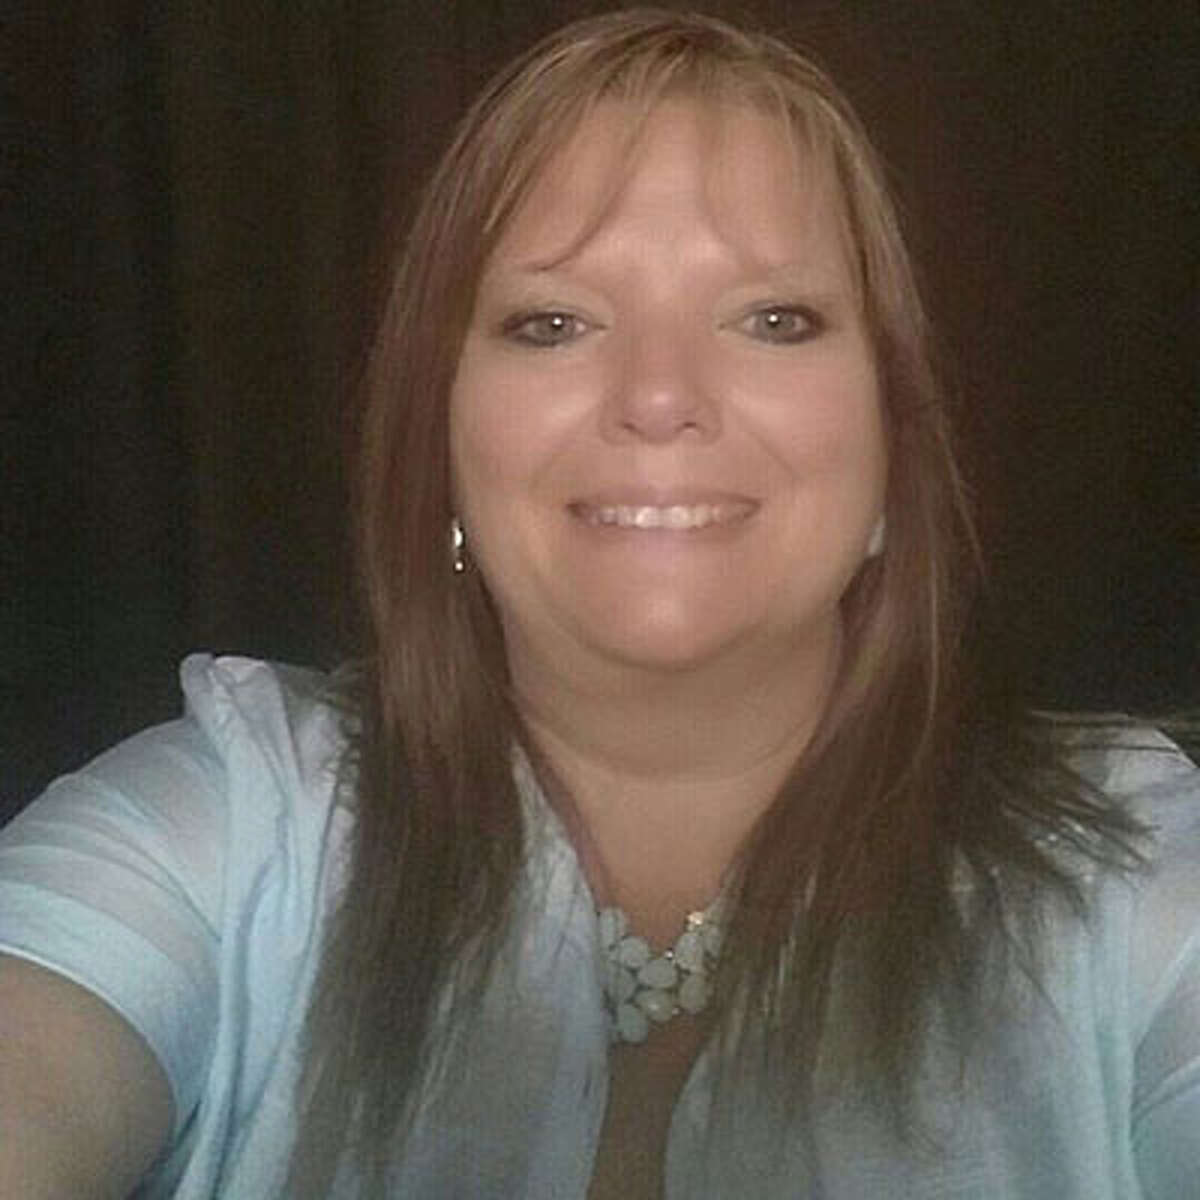 Angela Porter Russell, 45, whose body was found in a field in Liberty County over the weekend. Her husband has been charged in Montgomery County with murder in her death.